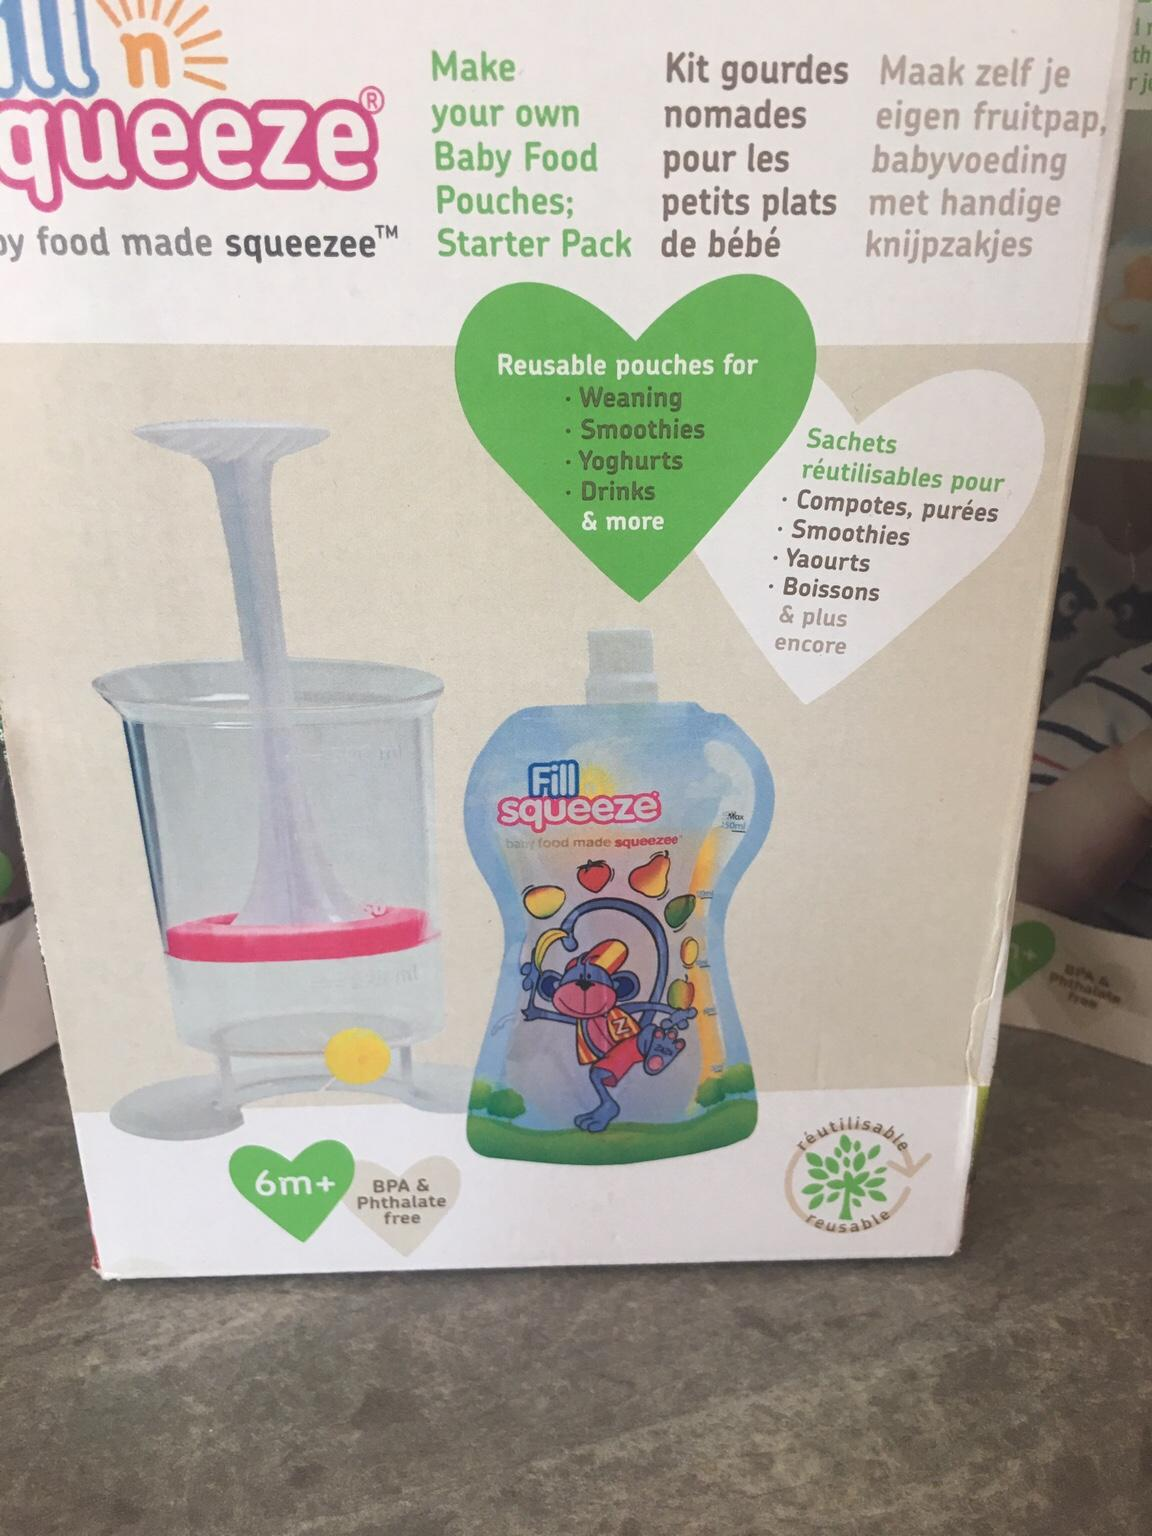 Easy To Use Makes Fo Make your Own Babyfood Squeeze Pouches Baby Food Maker